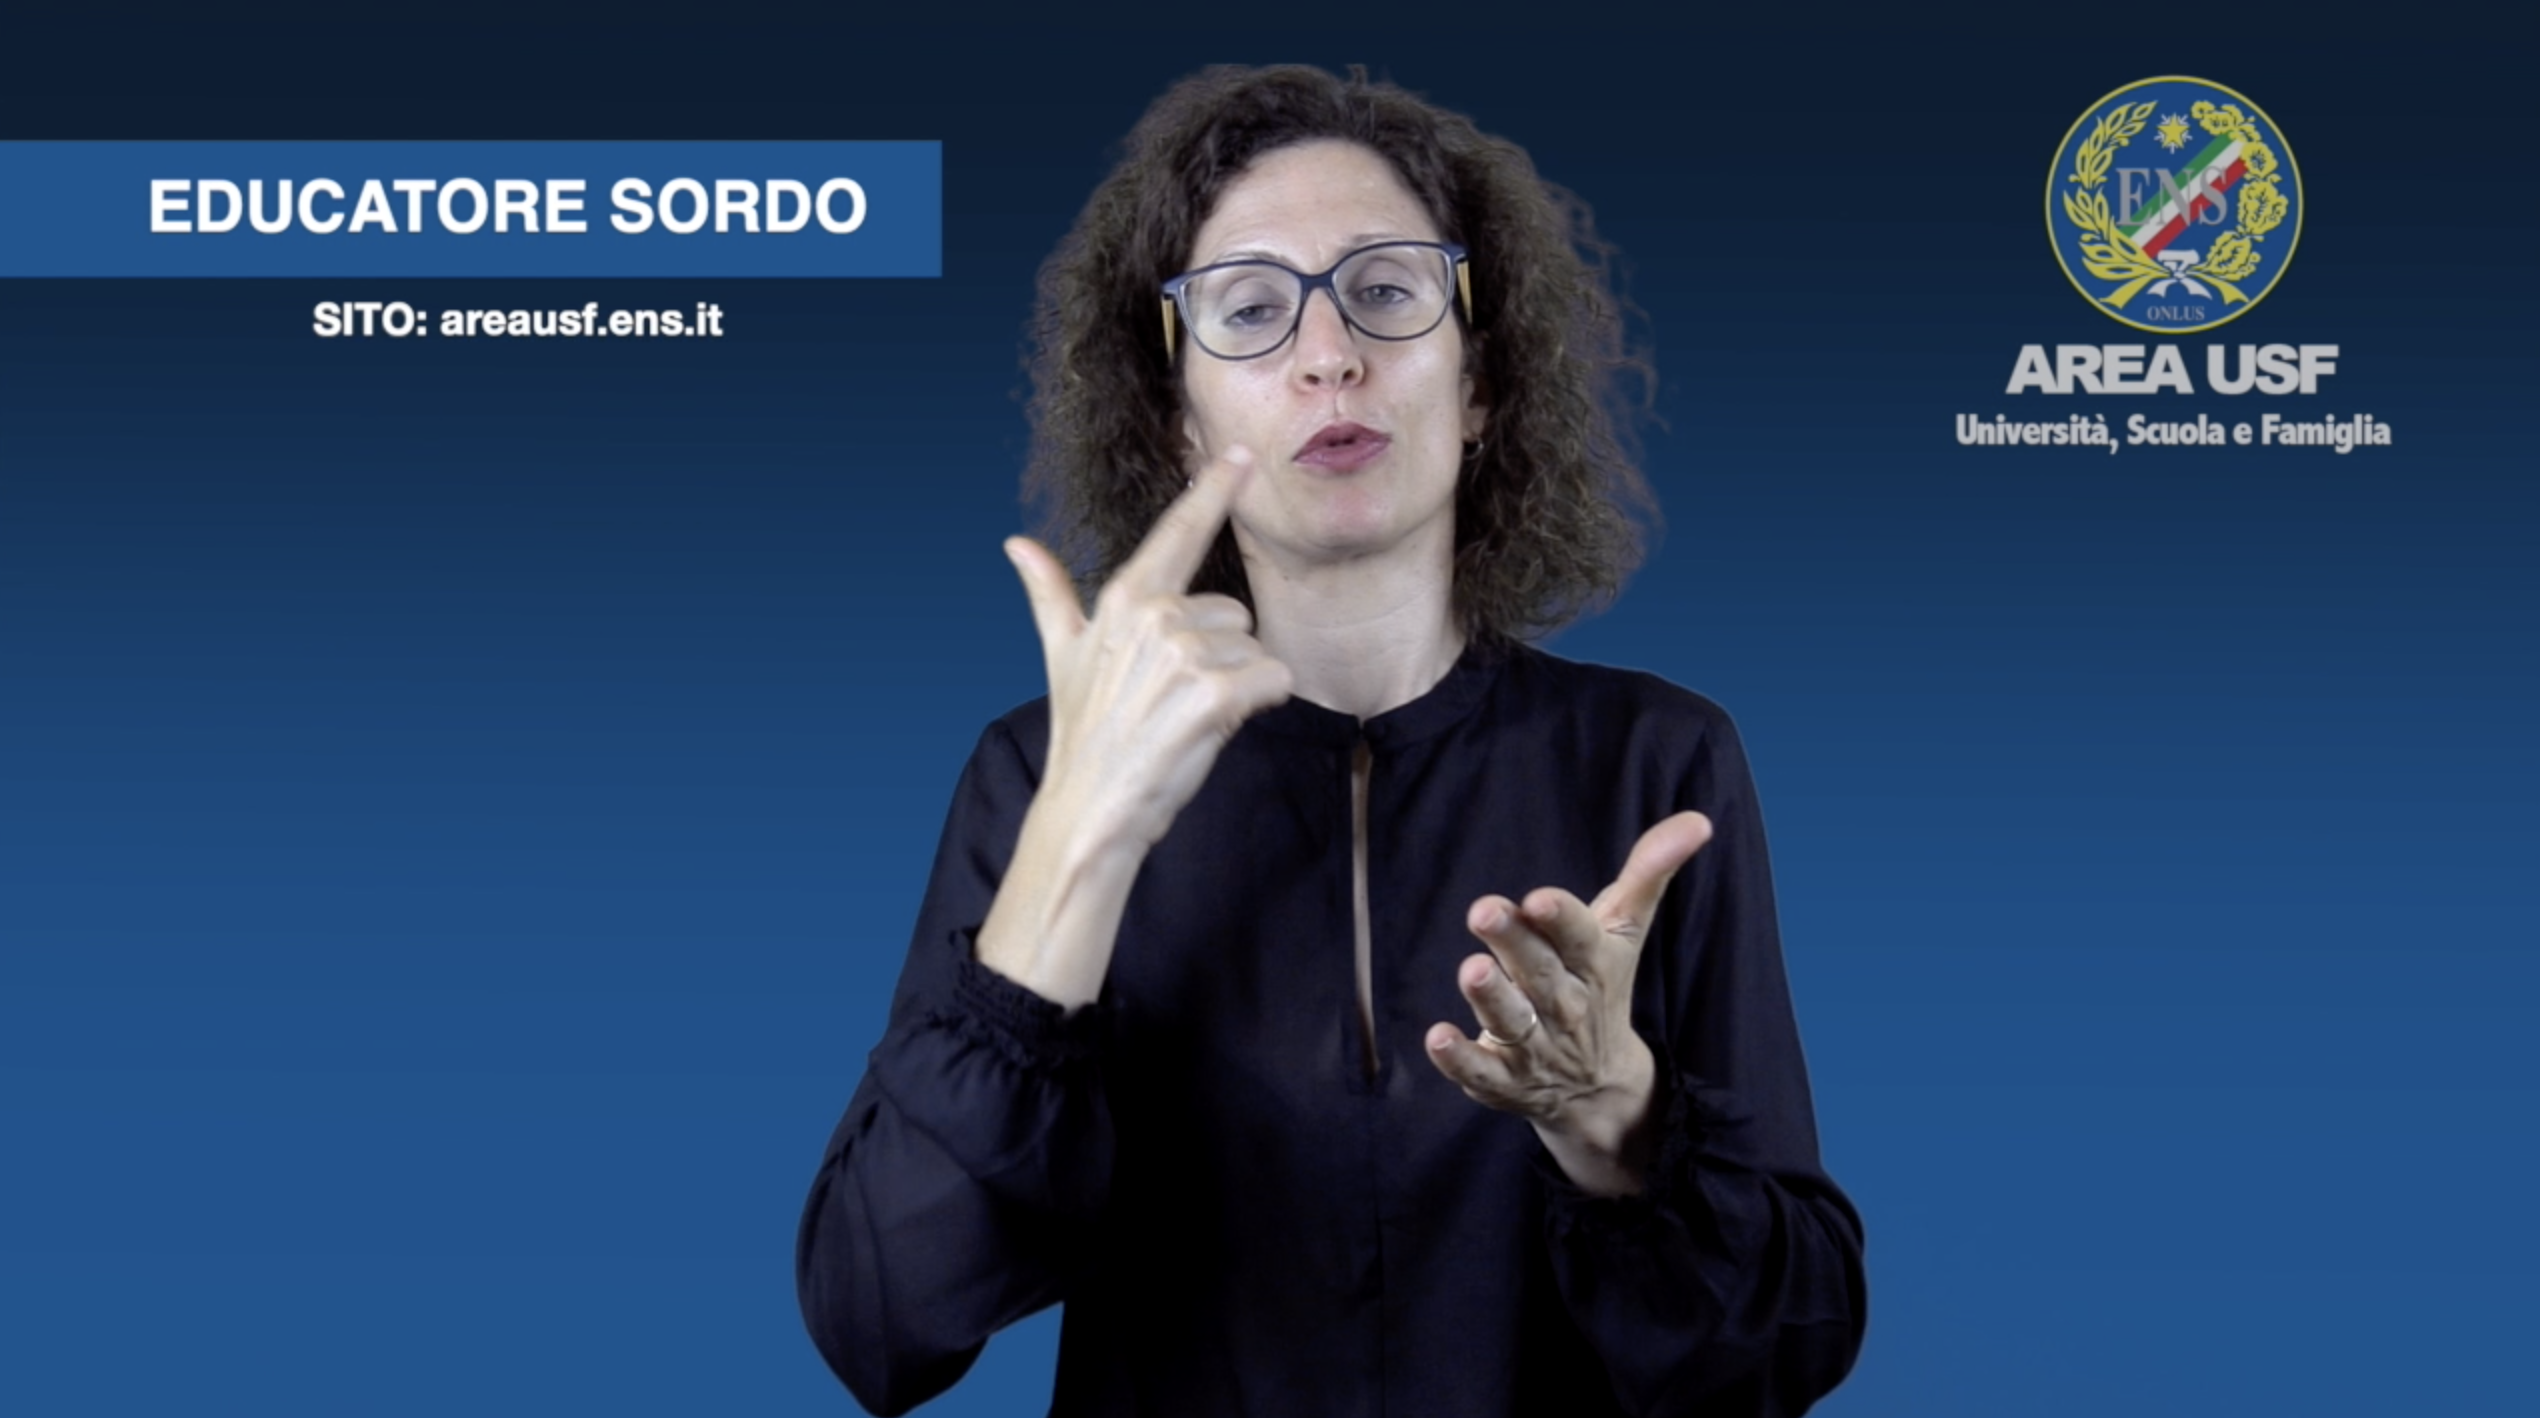 EDUCATORE SORDO